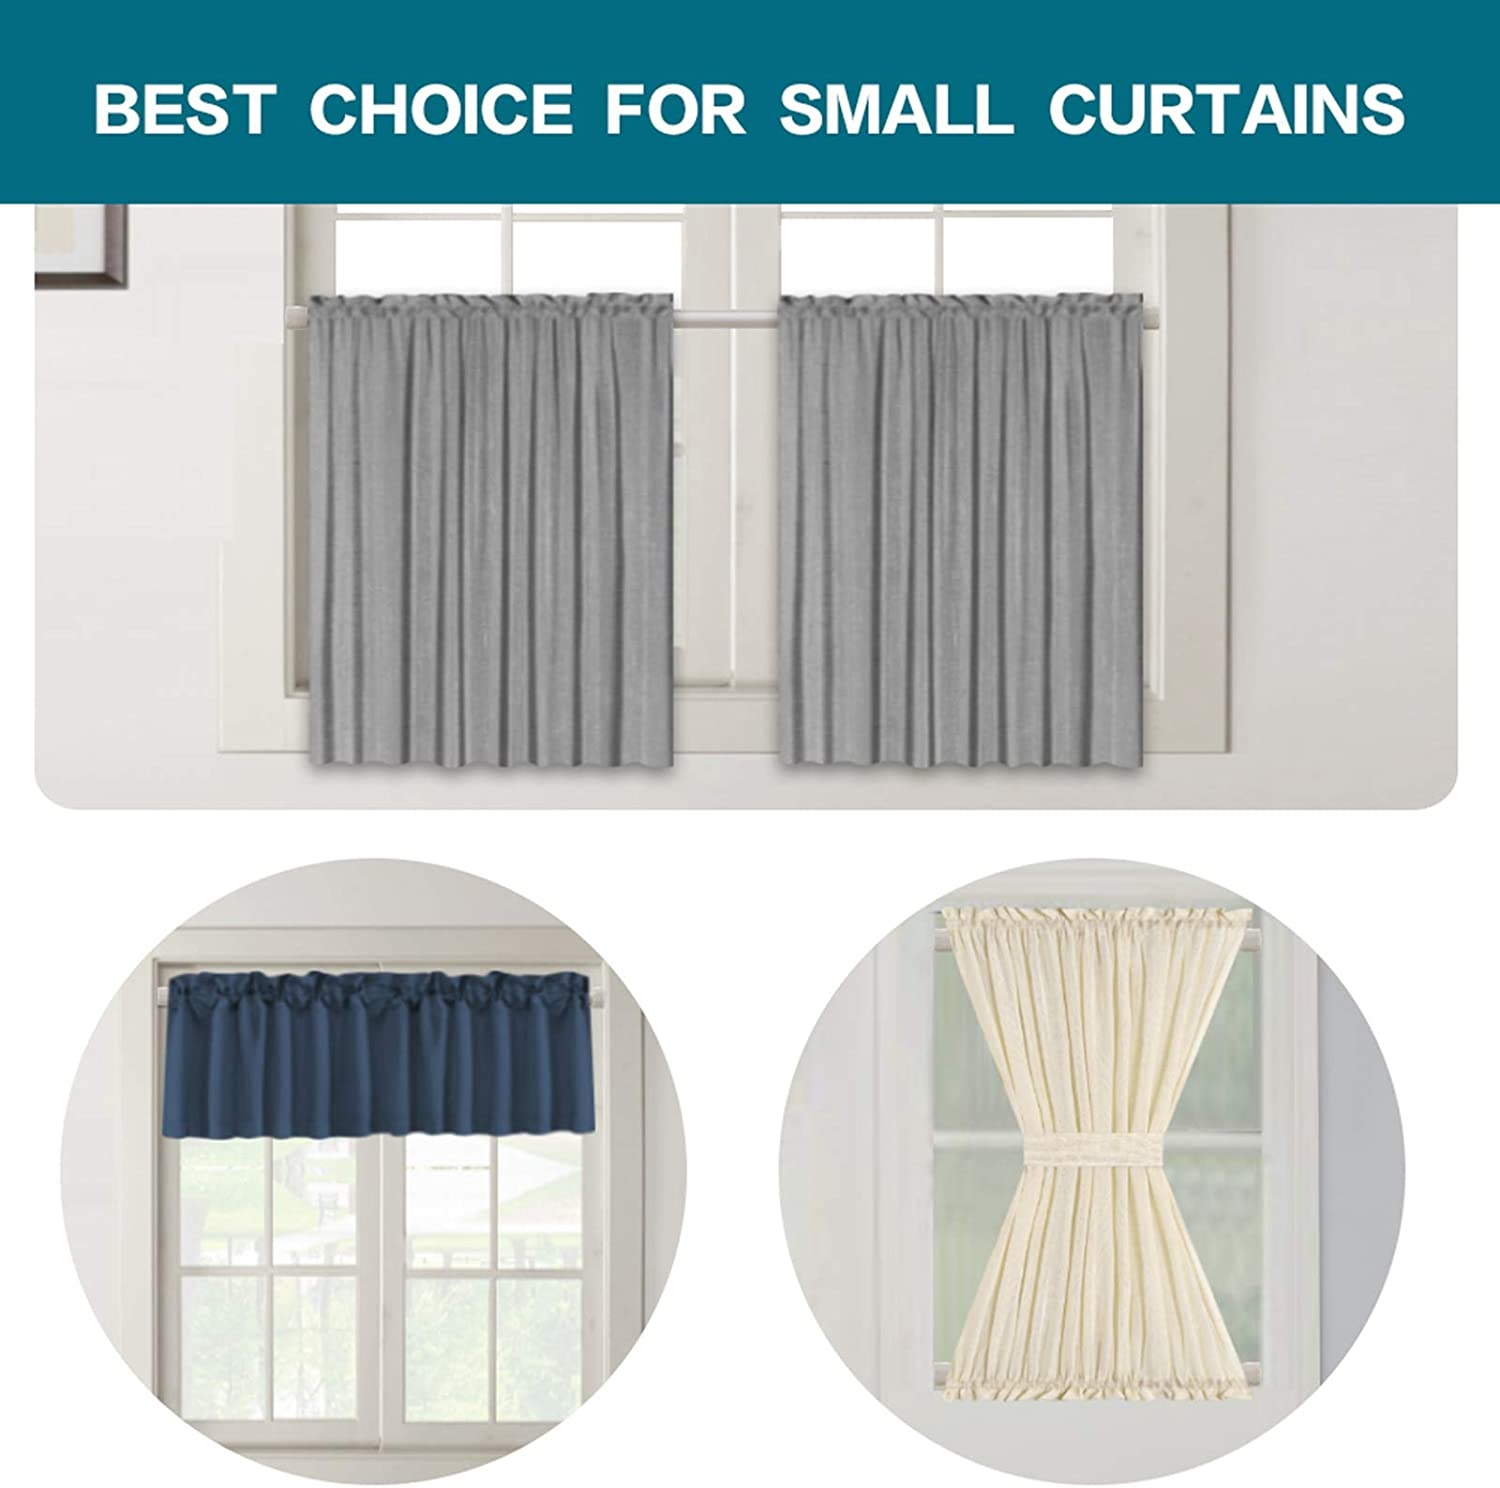 Turquoize Oval Tension Rods Adjustable Width Curtains Rods 4 Pack Spring Window Round 22 to 36 inches Spring Curtain Rod Tension Curtain Rod Nickel